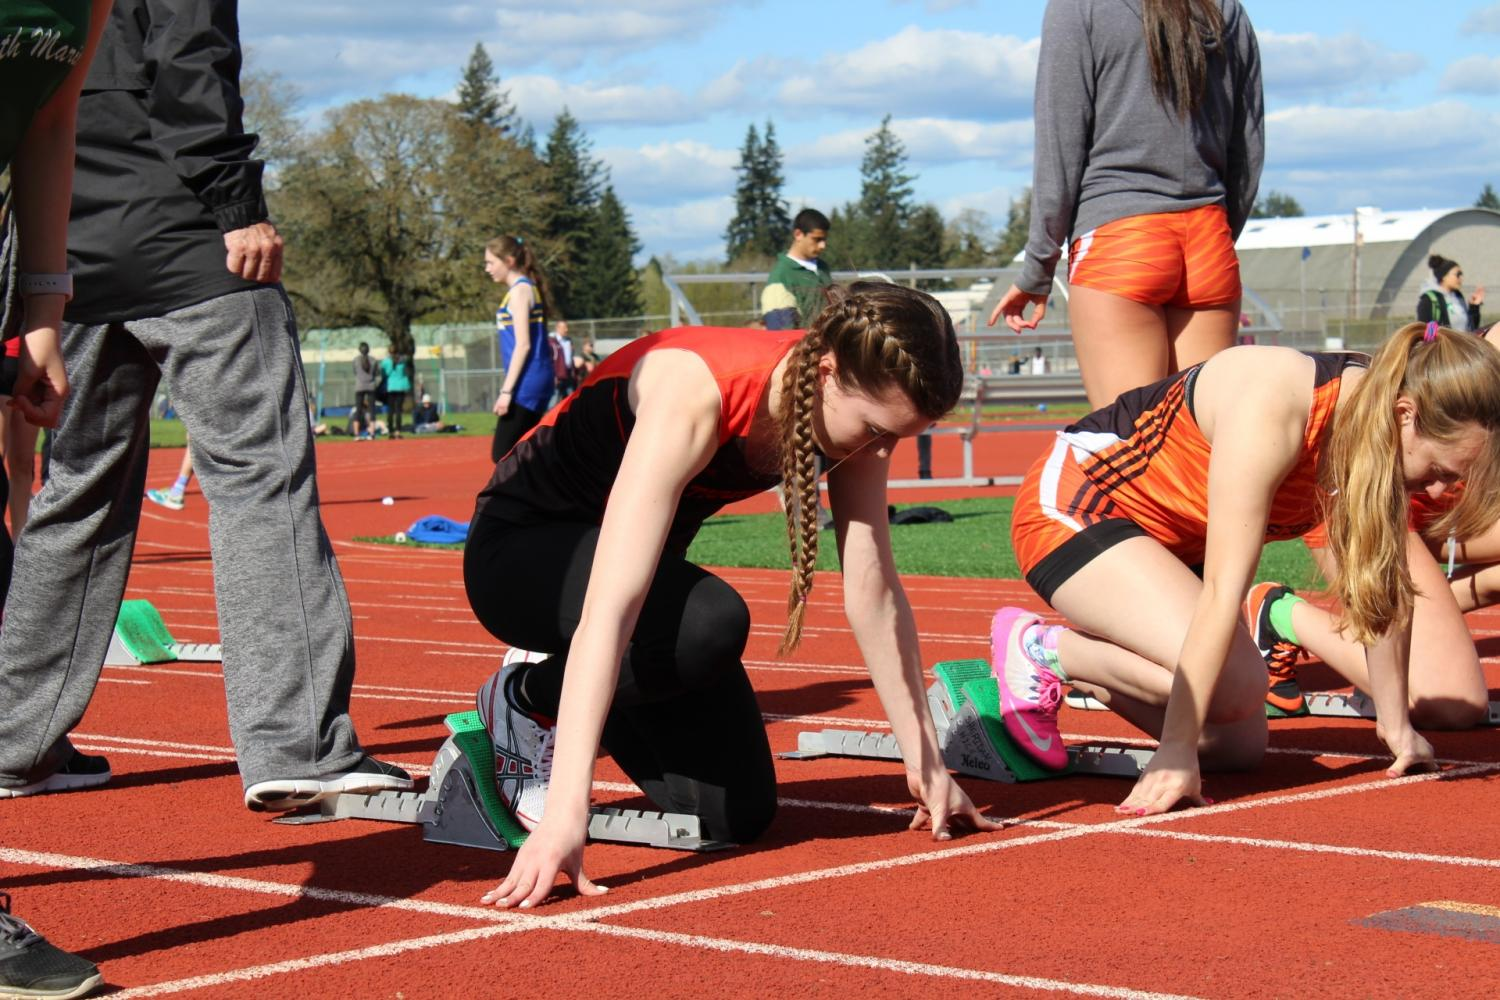 Jensyn Stanger getting ready in the blocks at the Stayton Twilight Track Meet.